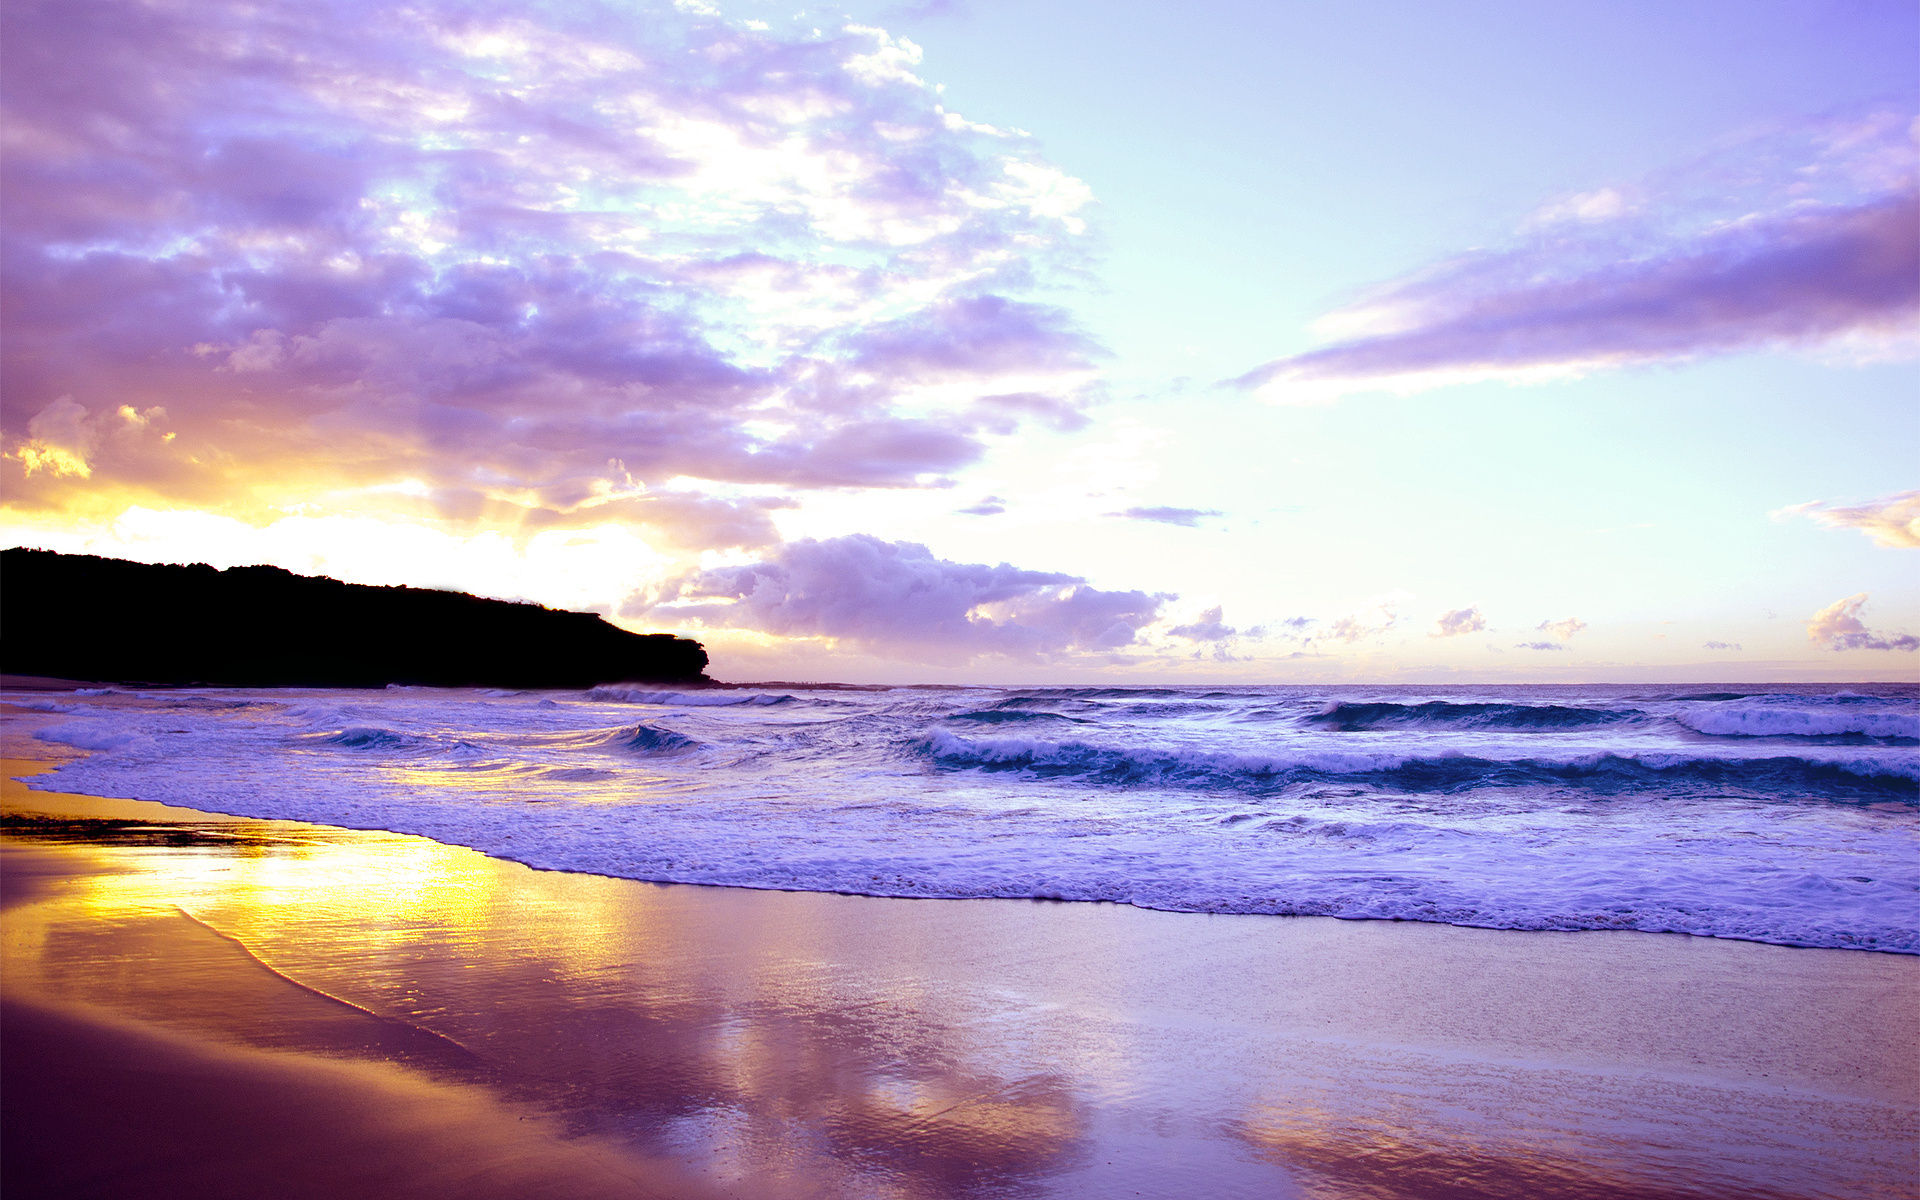 beautiful sunset beach photo - photo #12